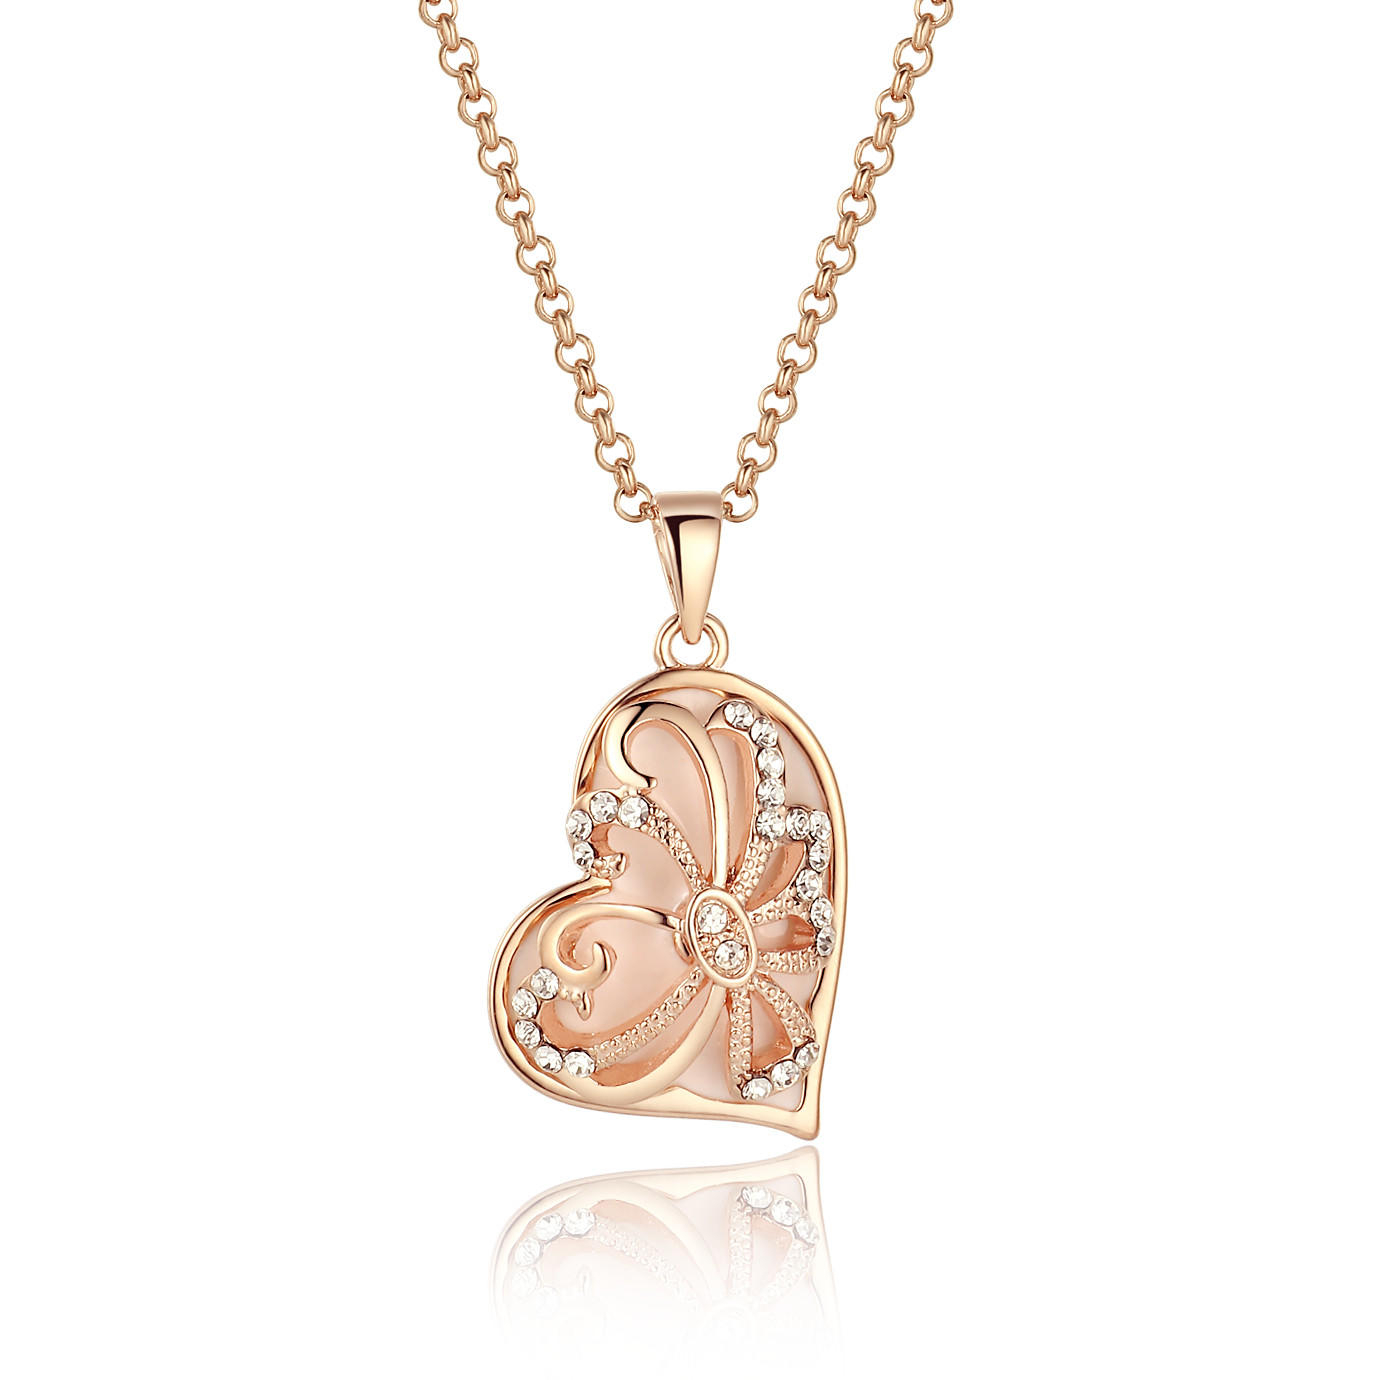 Rose Gold Tone Vintage Asymmetrical Heart Pendant Necklace And Earrings Set With Regard To Most Up To Date Asymmetrical Heart Necklaces (Gallery 23 of 25)